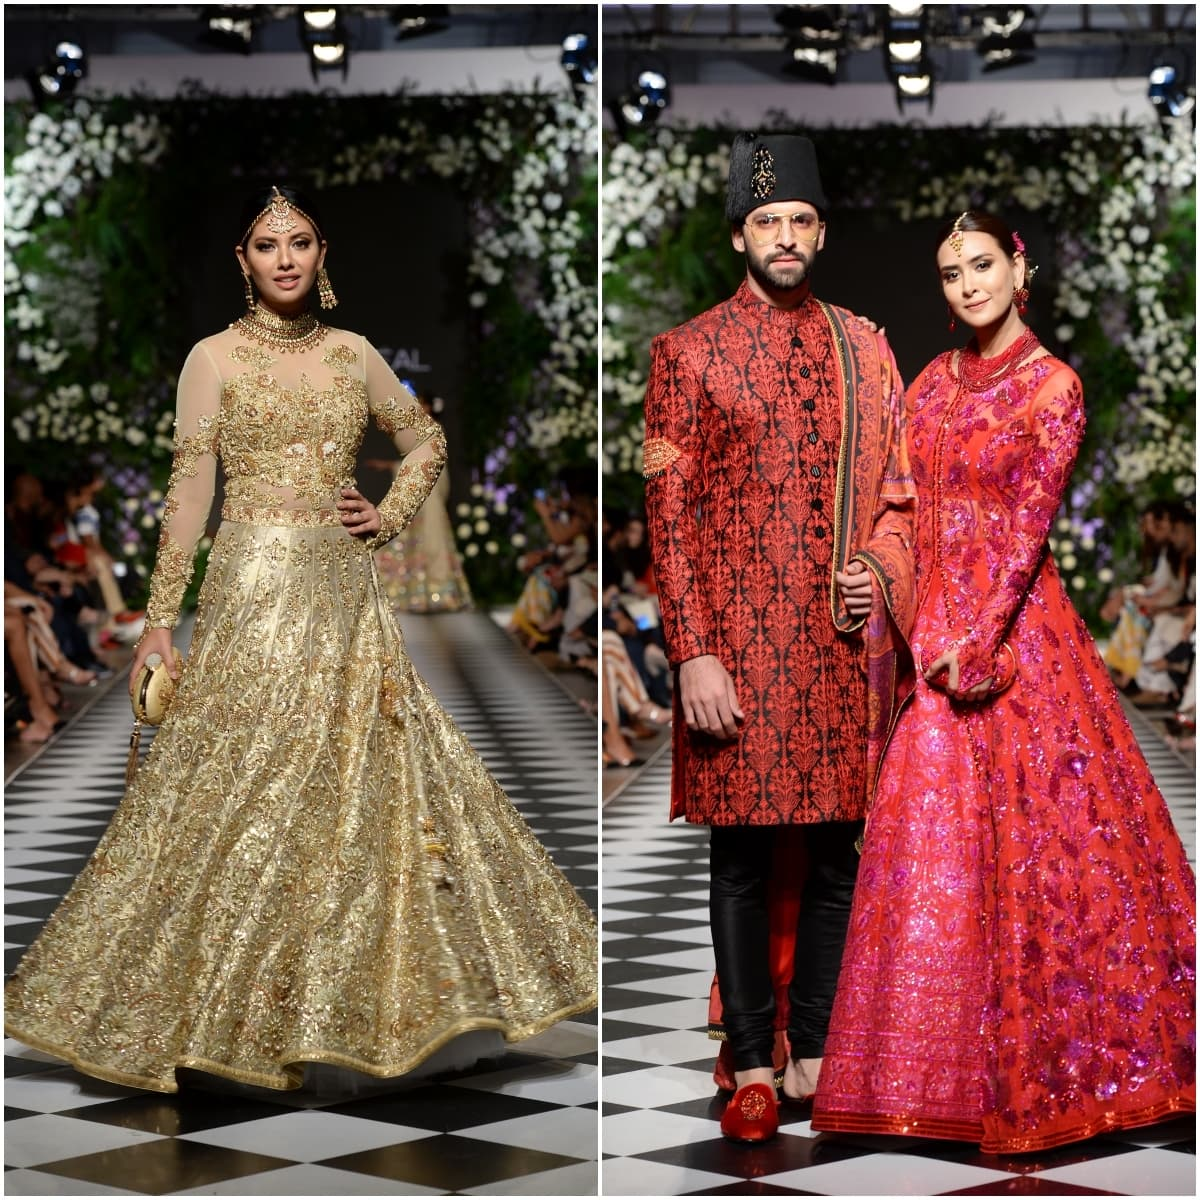 Standout looks from Nomi Ansari's colour wheel: gold on gold handwork, fuschia embellishments over a brilliant red